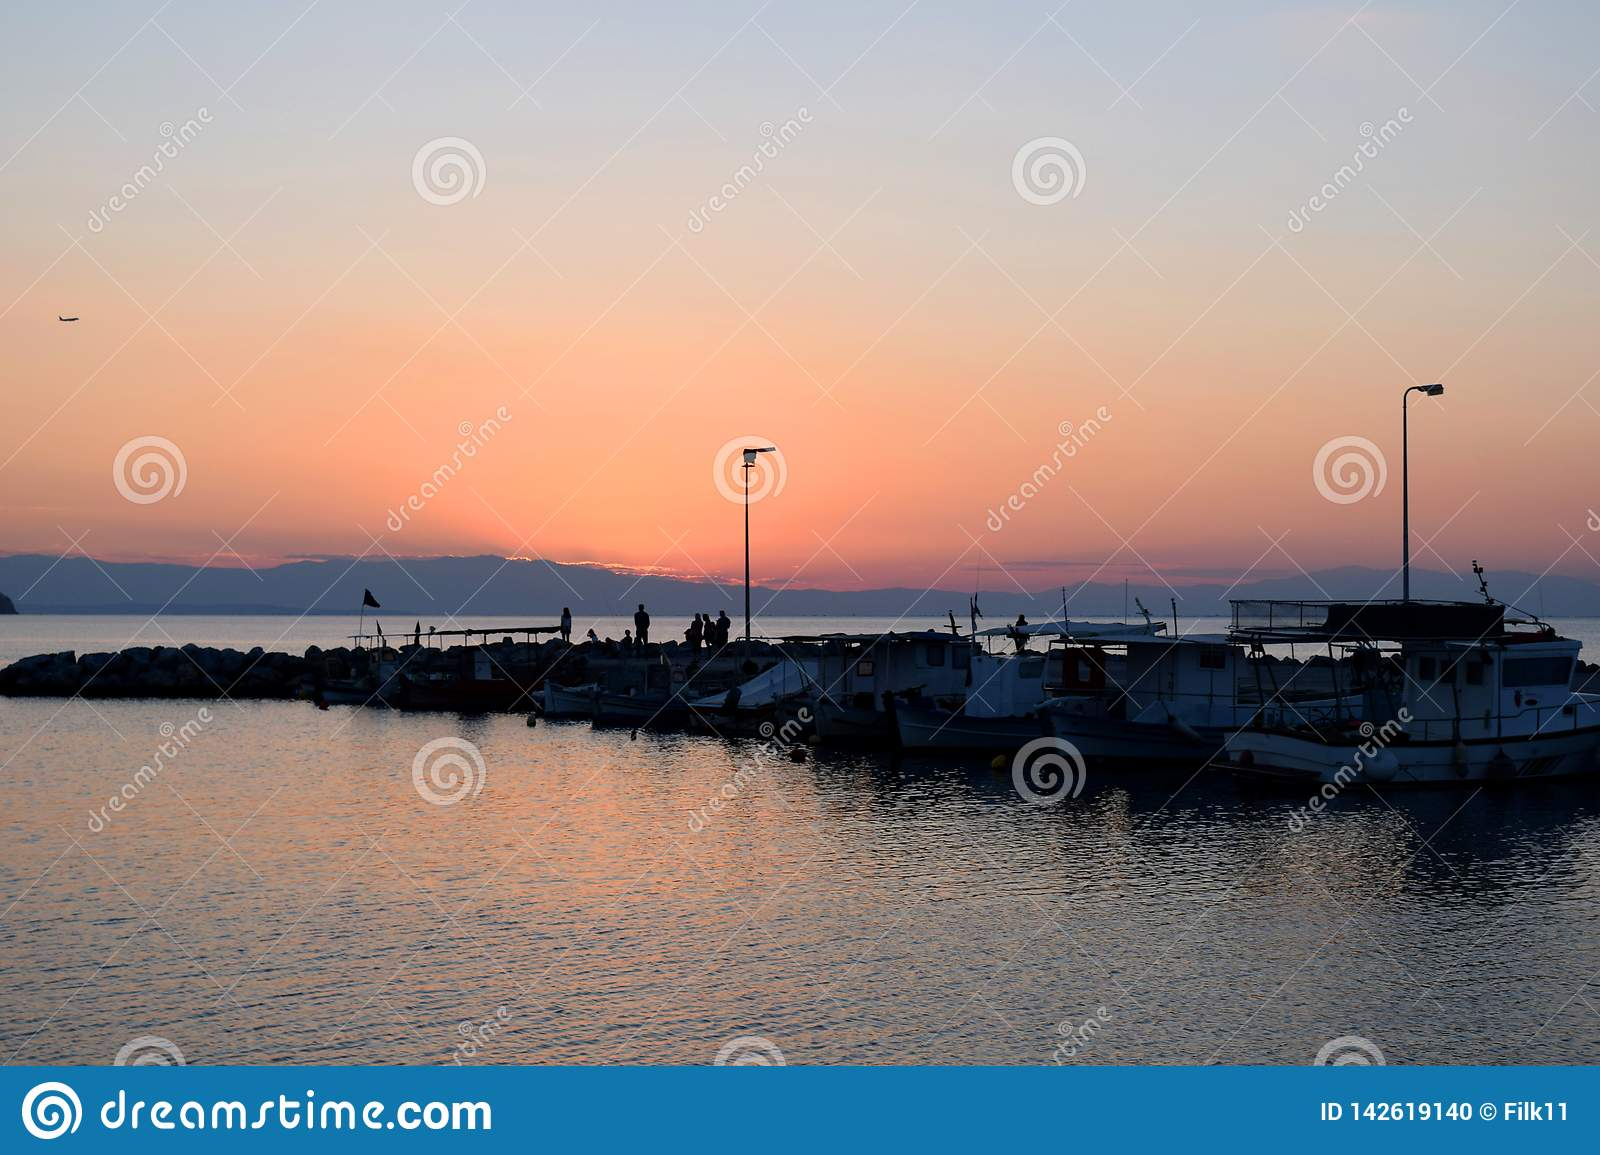 Coucher Du Soleil En Plage De Neoi Epivates Banlieue De Salonique Grece Photo Stock Image Du Rouge Orange 142619140